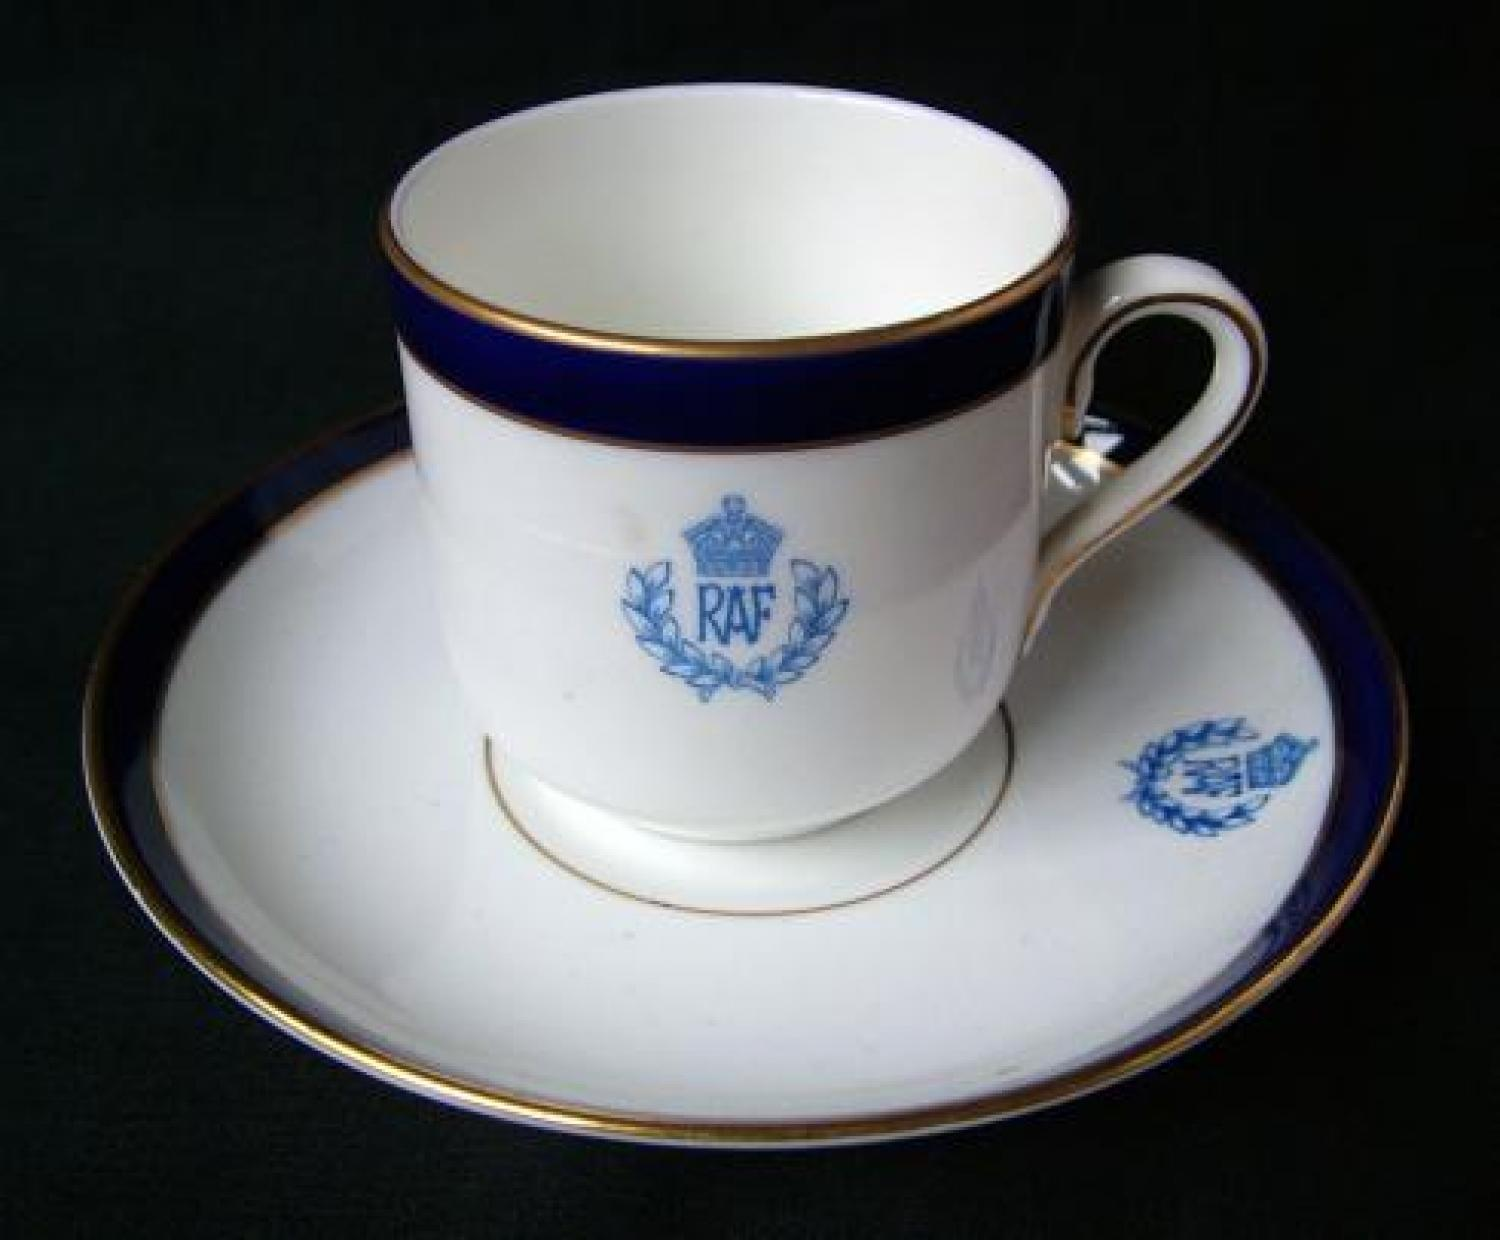 R.A.F. Mess Coffee Cup & Saucer